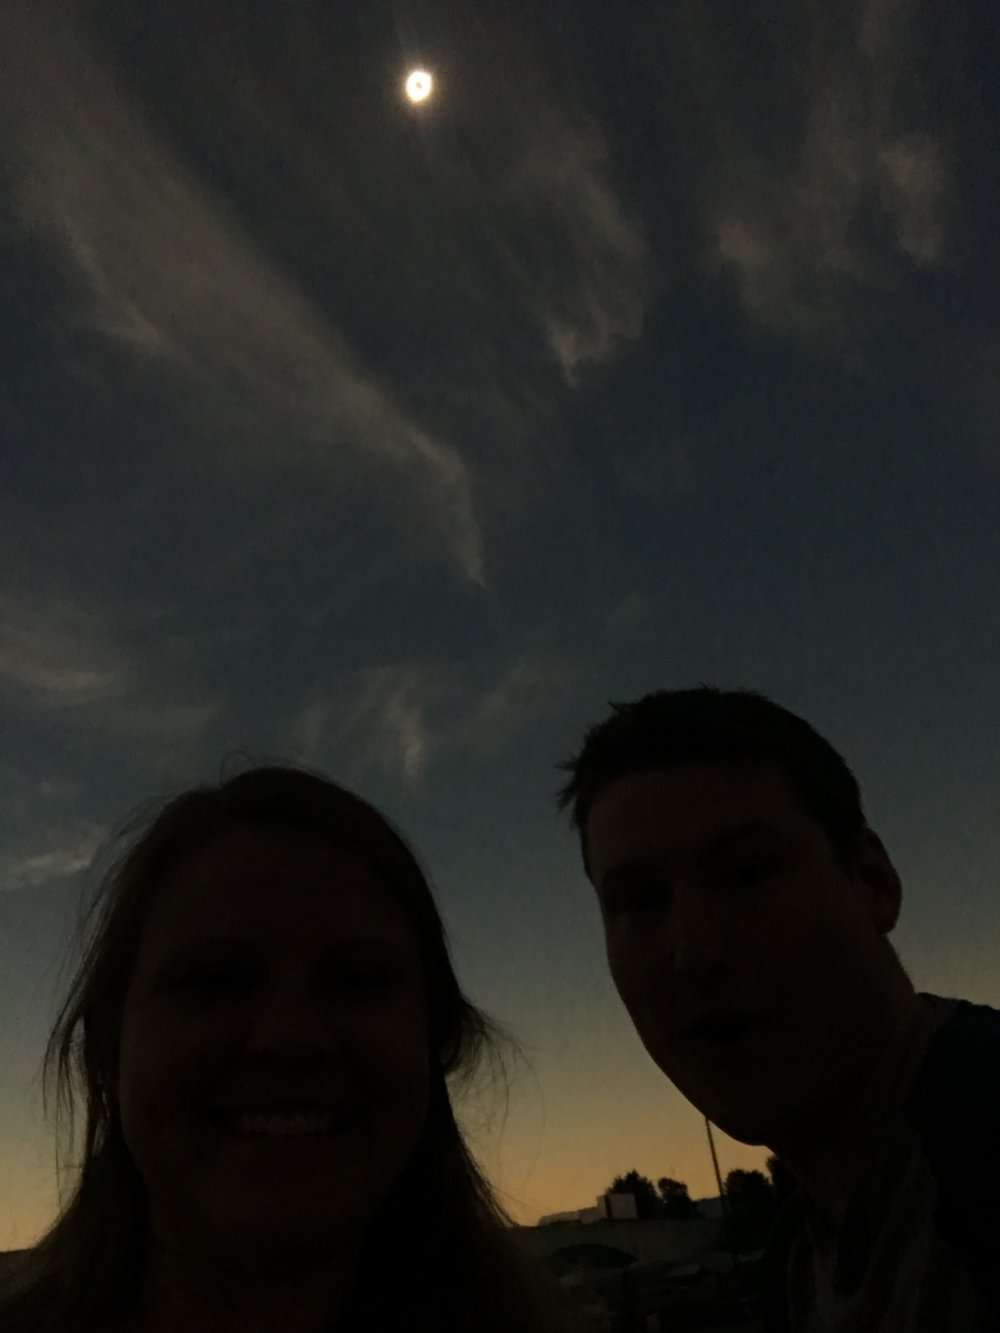 Cell phone pic during totality!